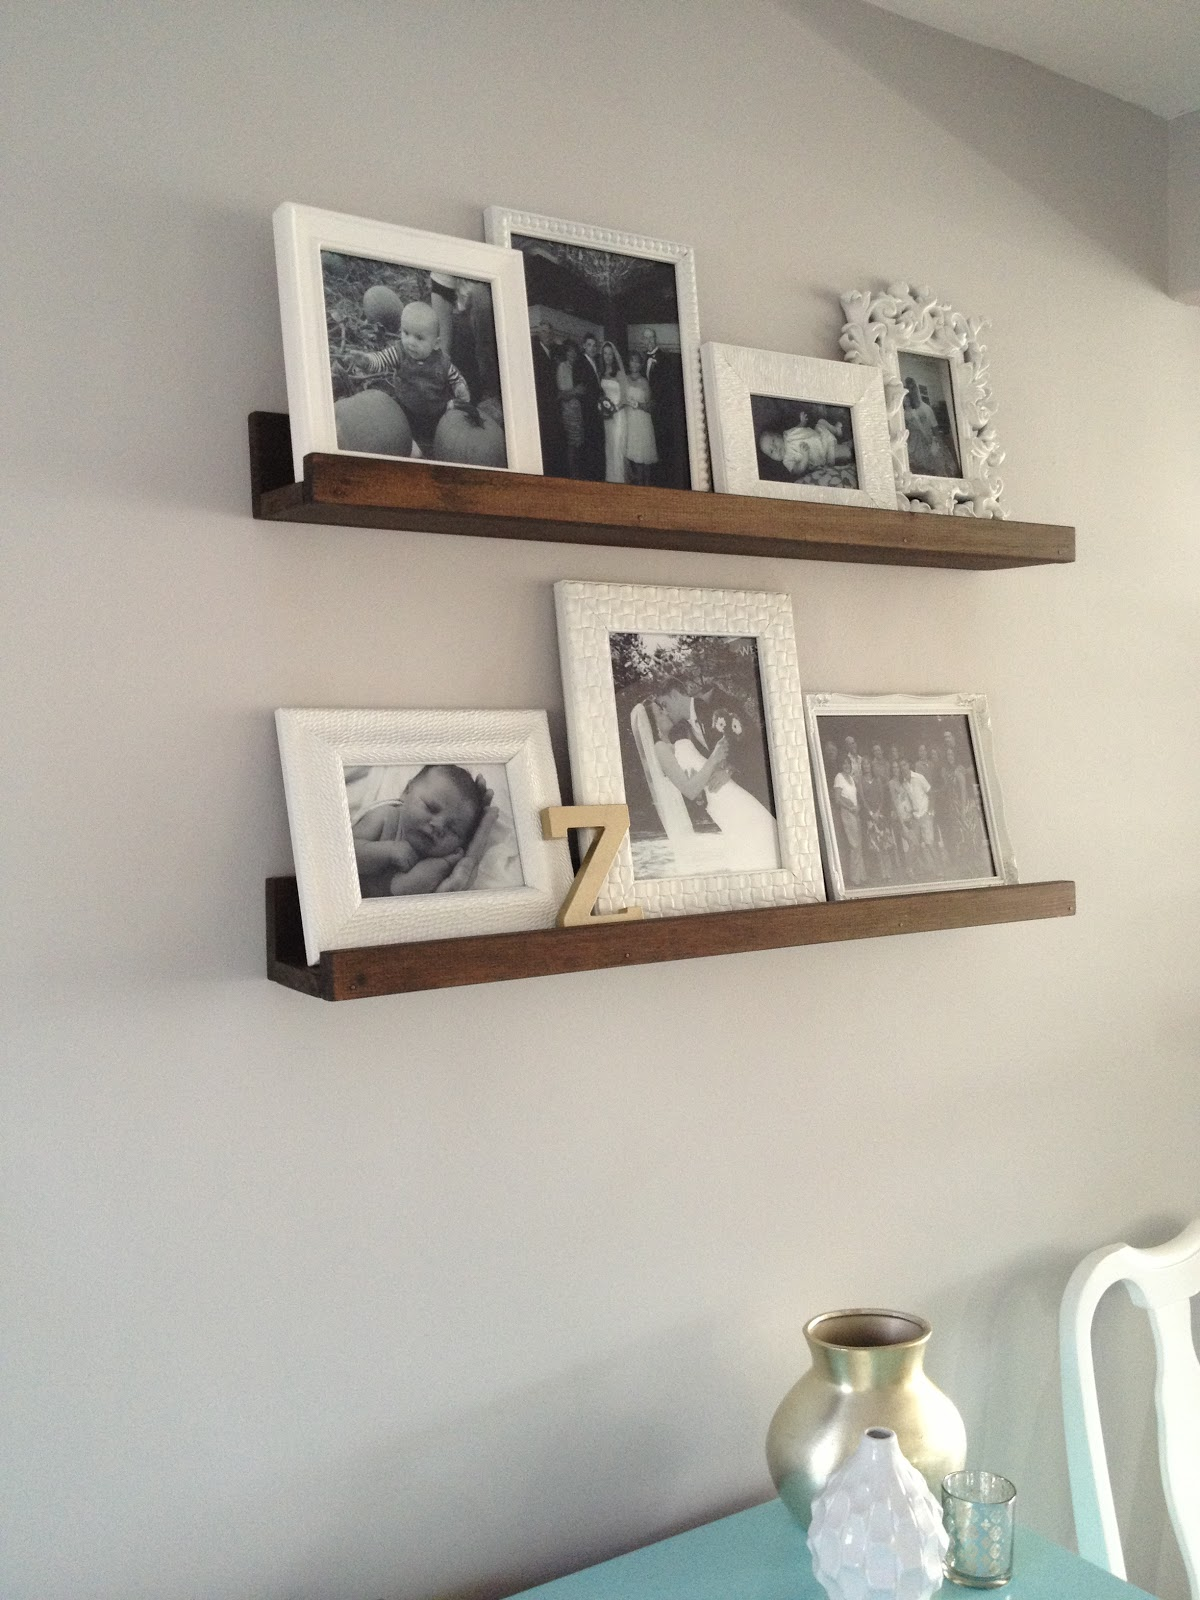 Retro ranch reno diy wood shelves - Shelving for picture frames ...